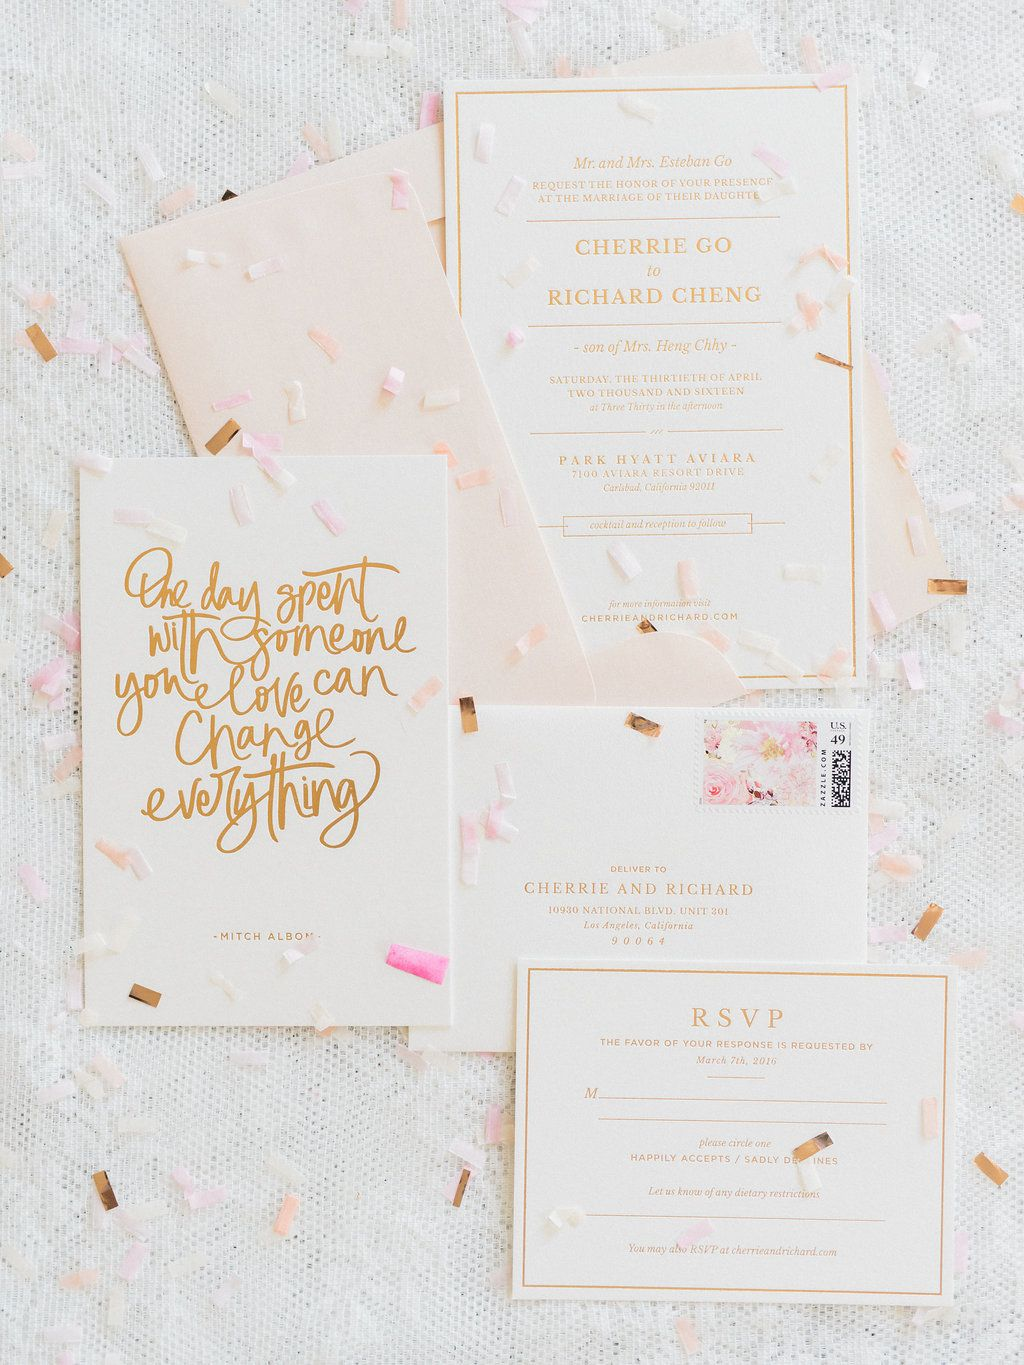 Pin By Fischi On Vintage Pinterest Confetti Classic Weddings